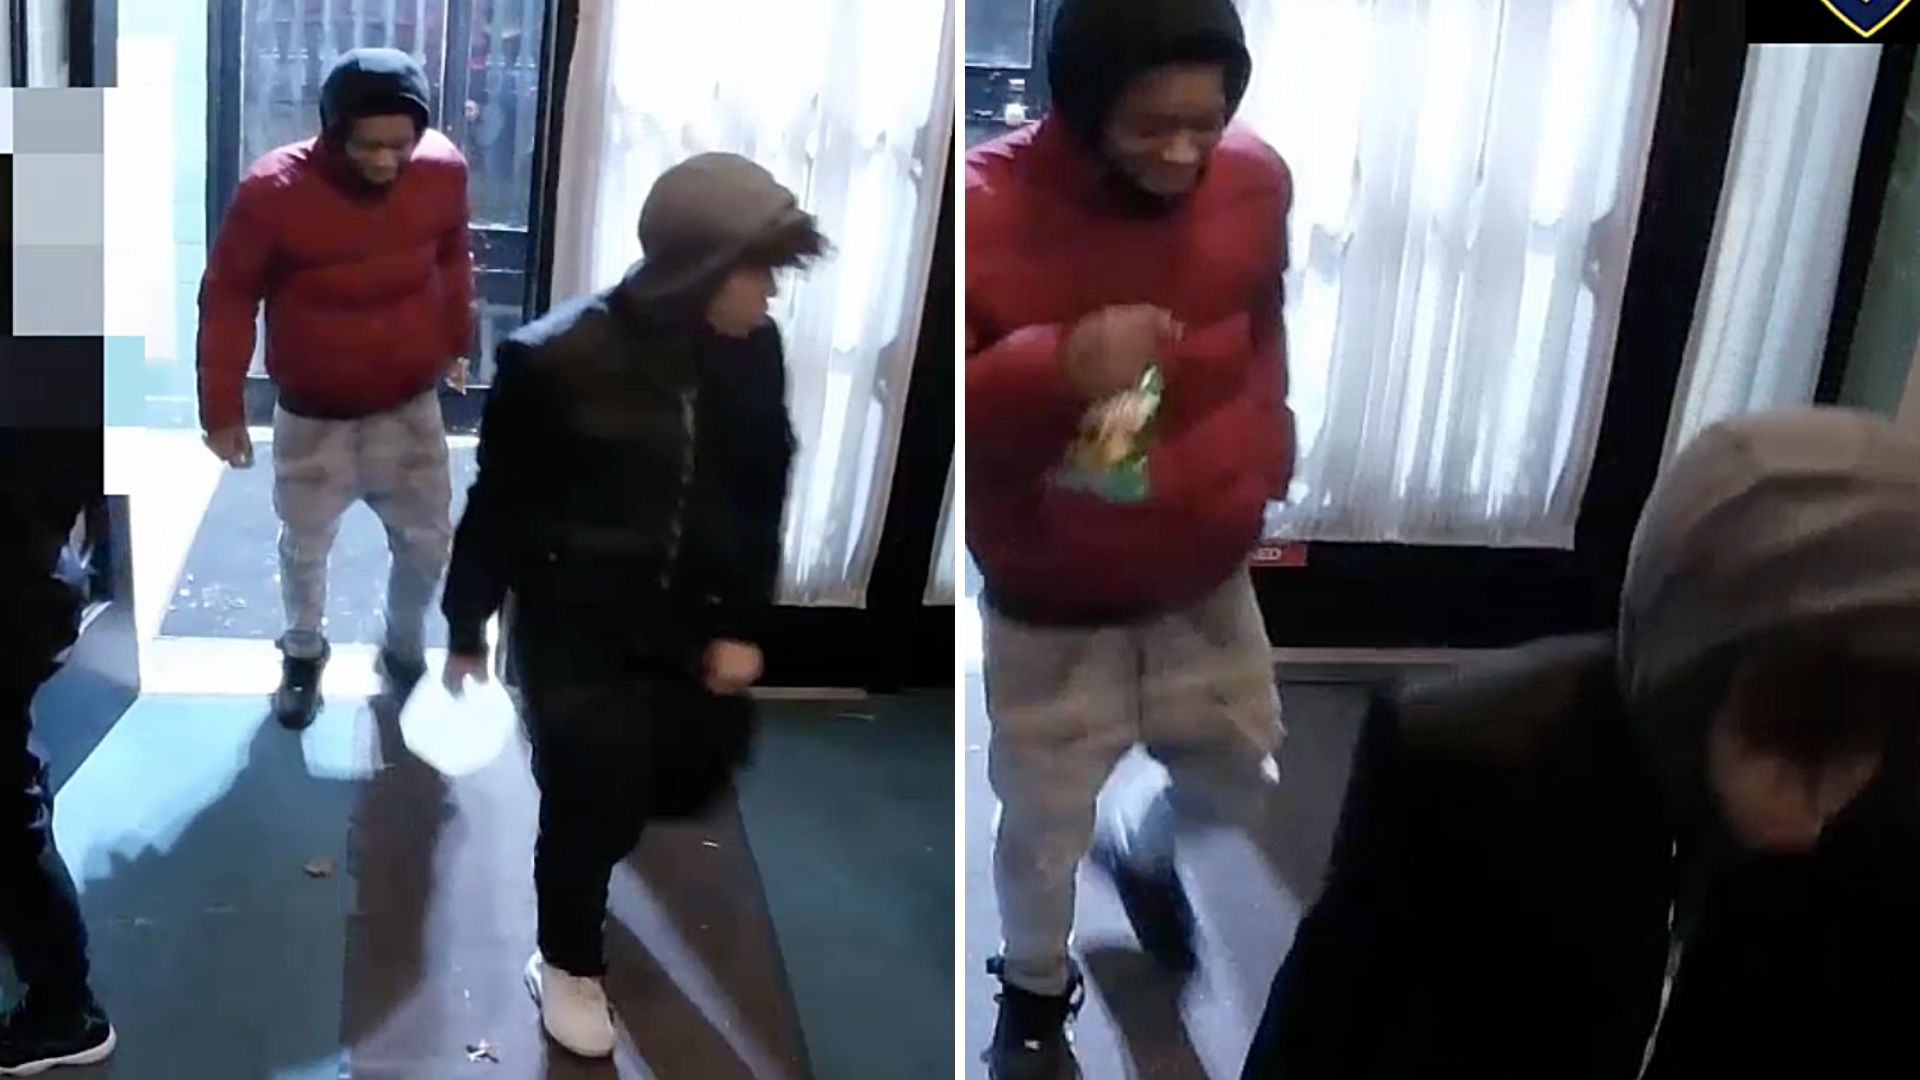 Suspects in attack on delivery man in Manhattan